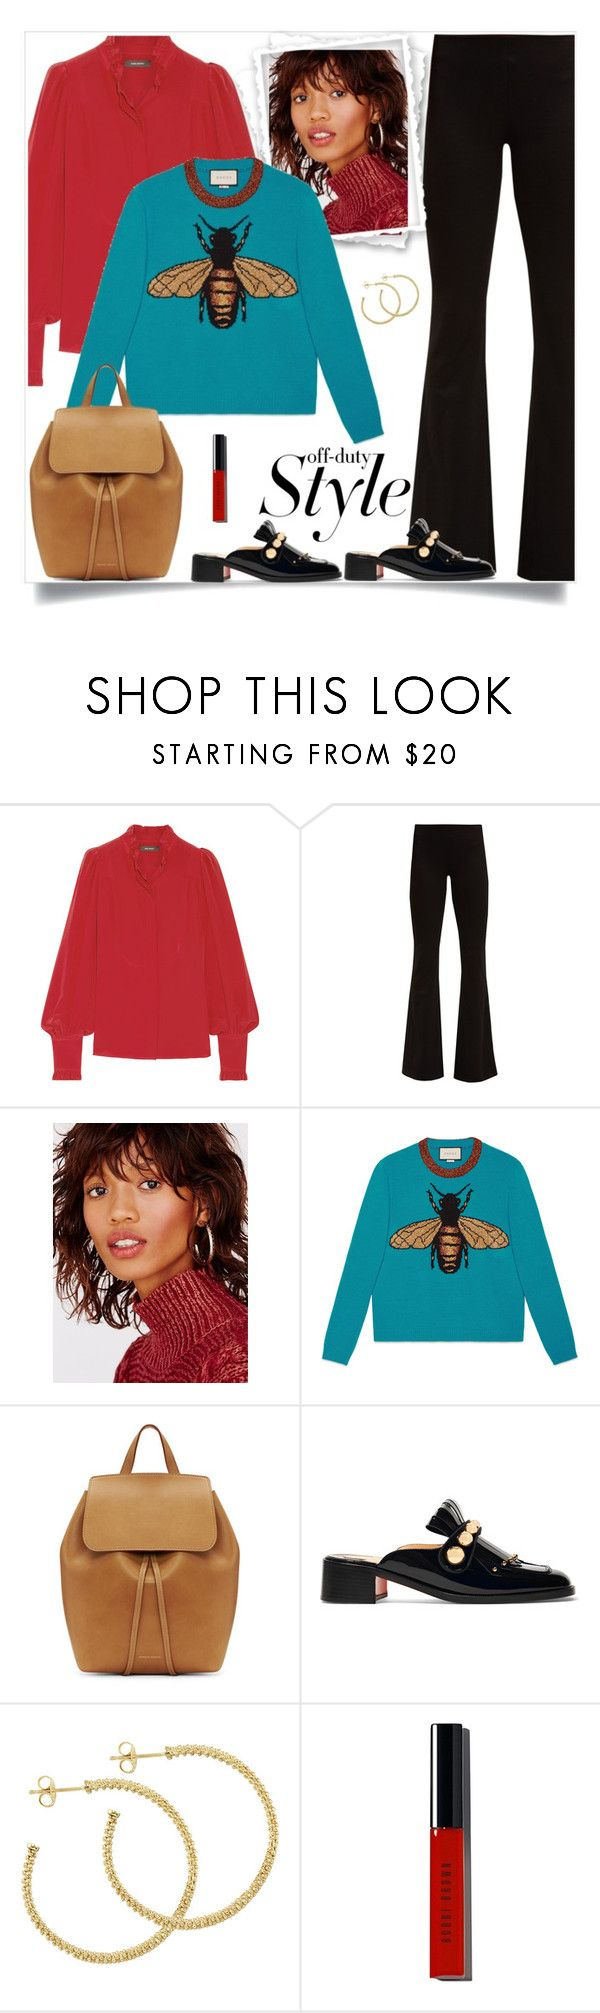 """""""."""" by fashionmonkey1 ❤ liked on Polyvore featuring Isabel Marant, Galvan, Free People, Gucci, Mansur Gavriel, Christian Louboutin, Lagos and Bobbi Brown Cosmetics"""